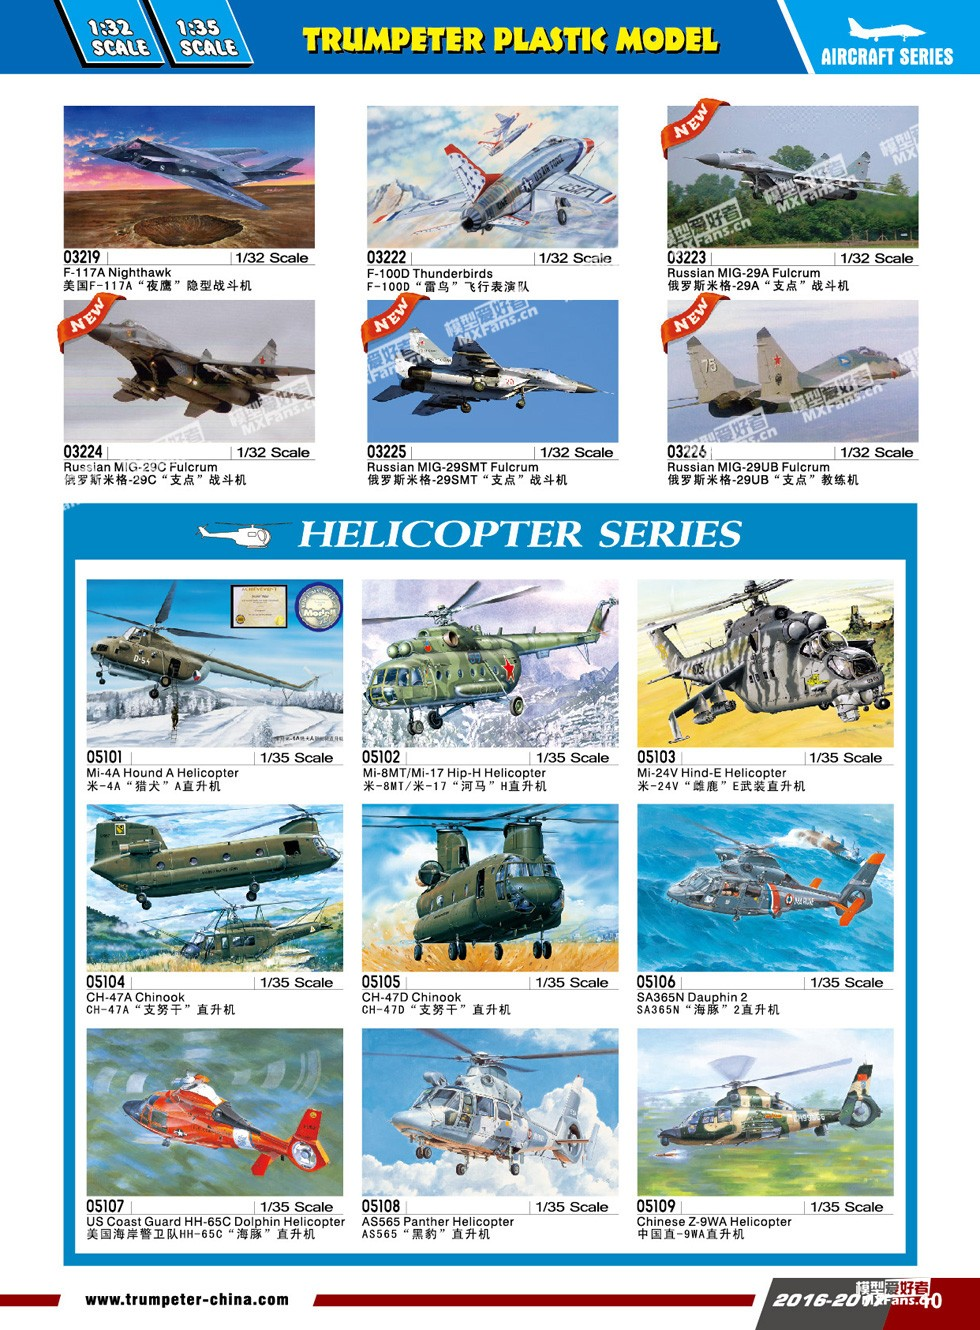 The Modelling News: Trumpeter catalogue 2016-2017 Let's see